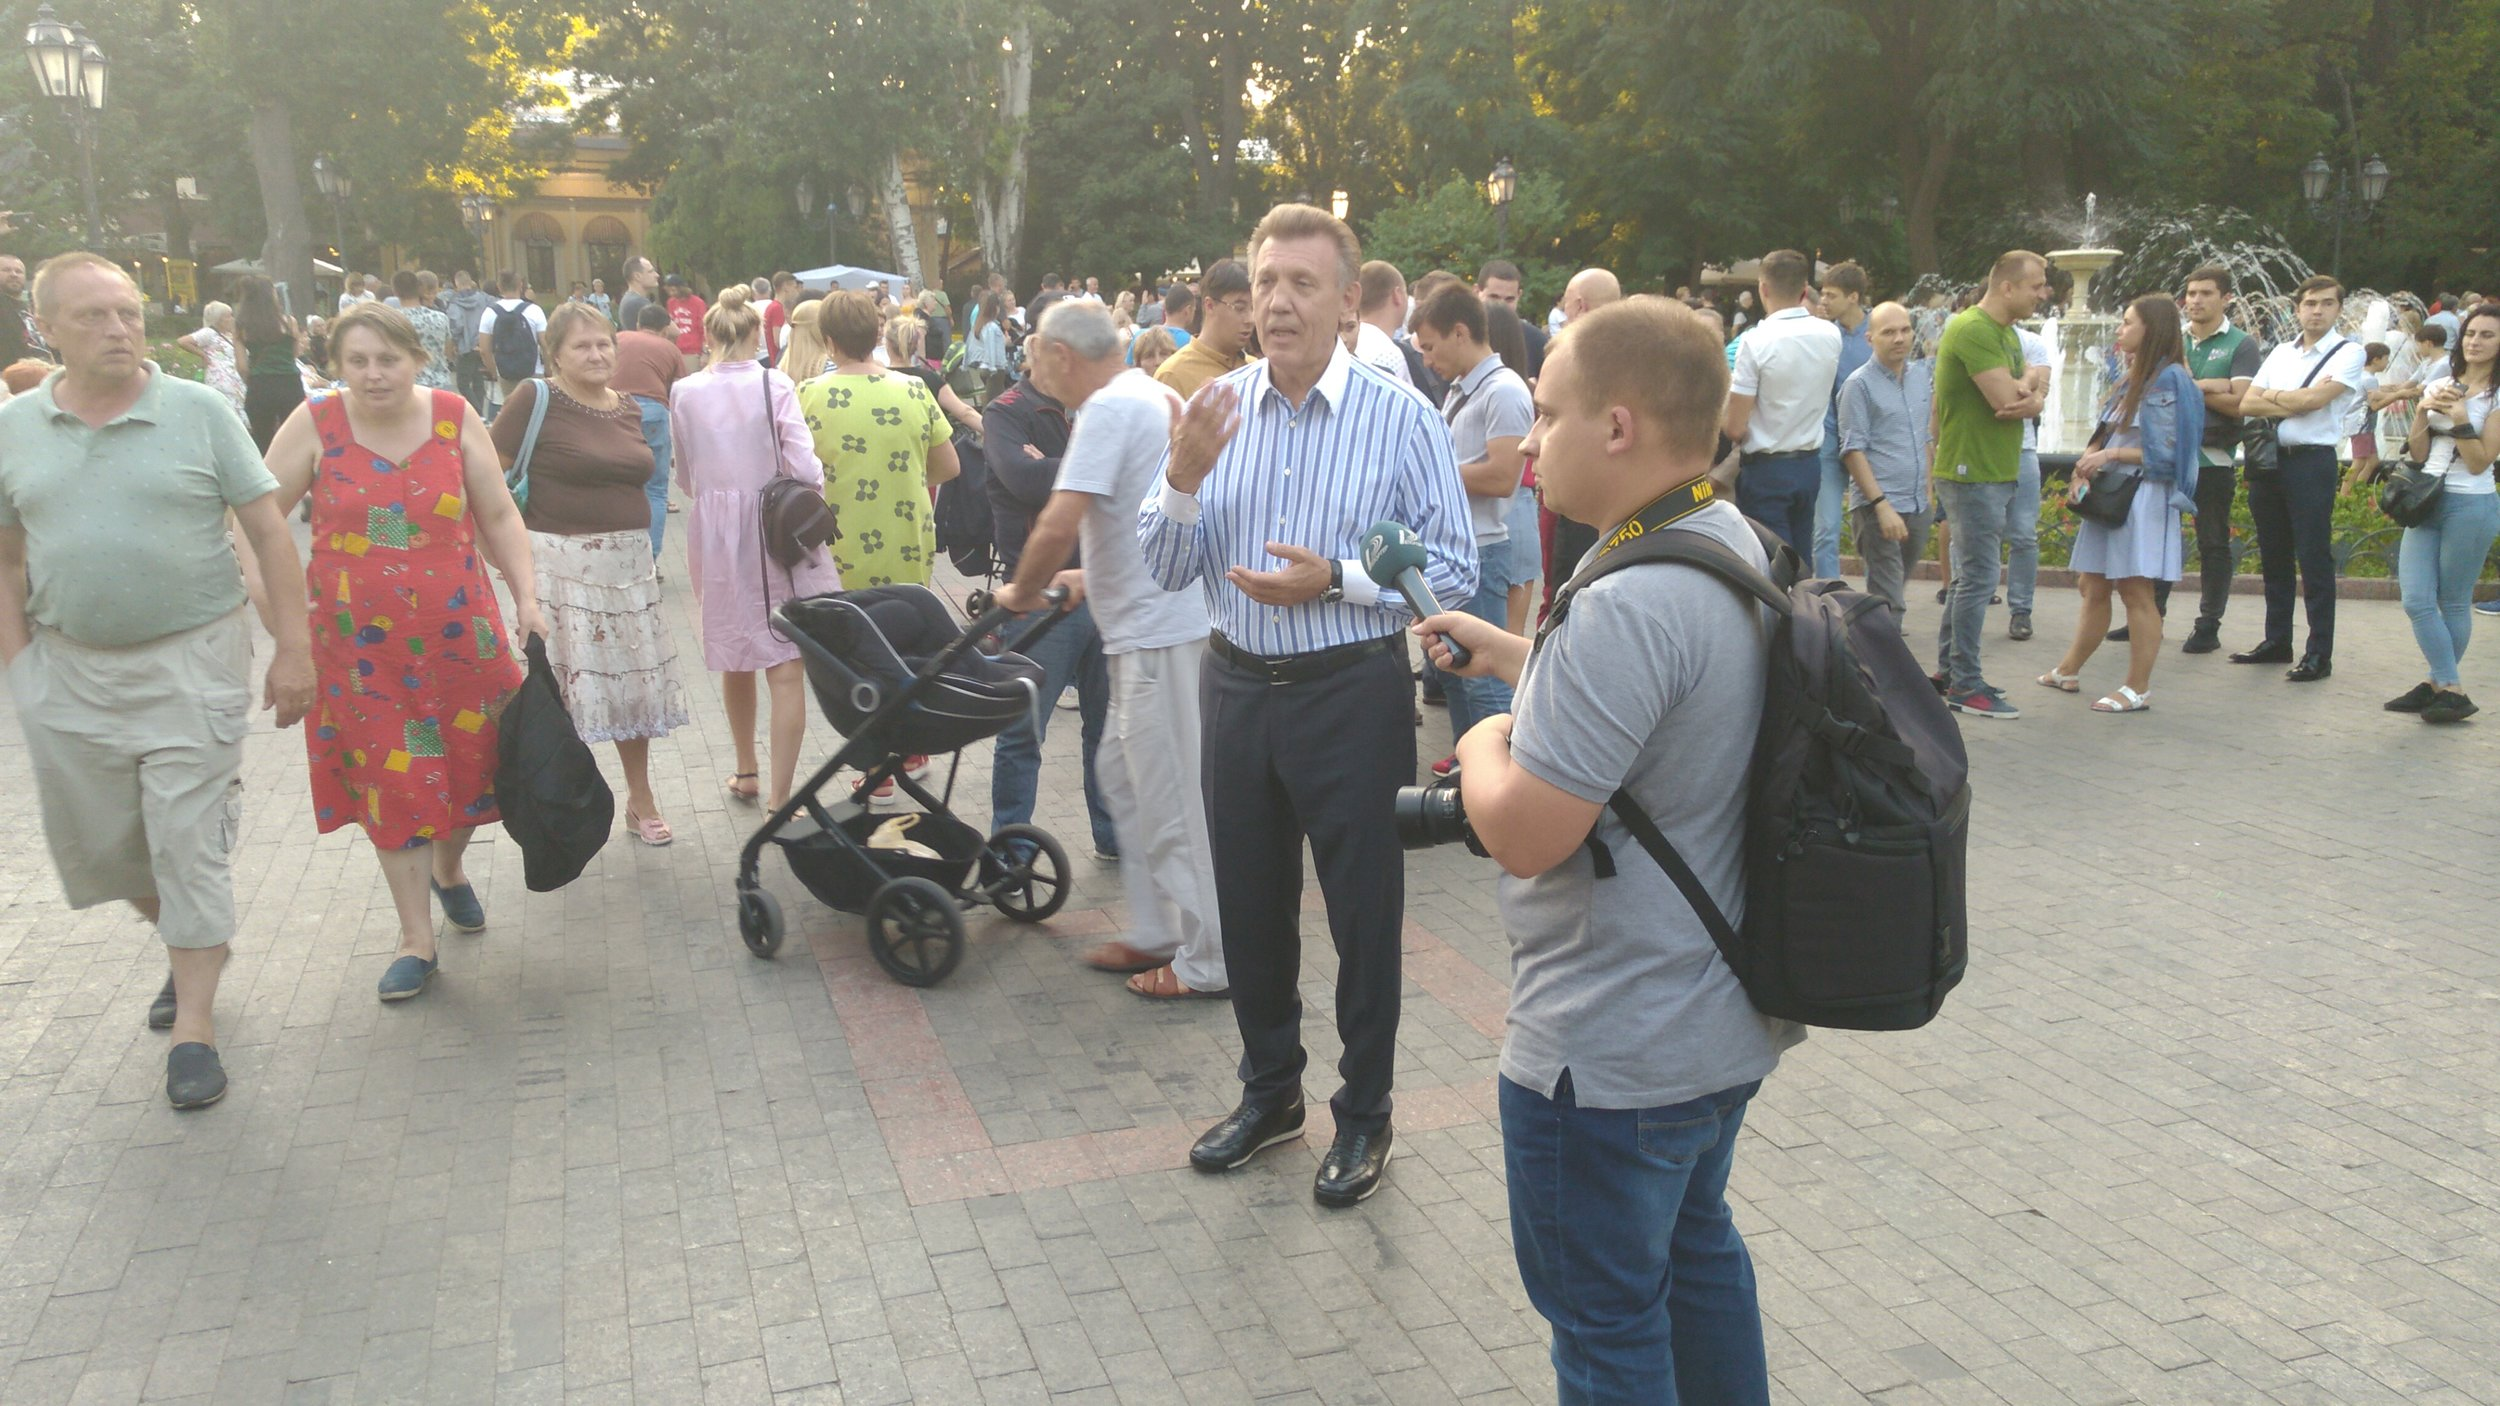 Kovalov gives his later to be broadcast public interview using the festivities behind him as a backdrop